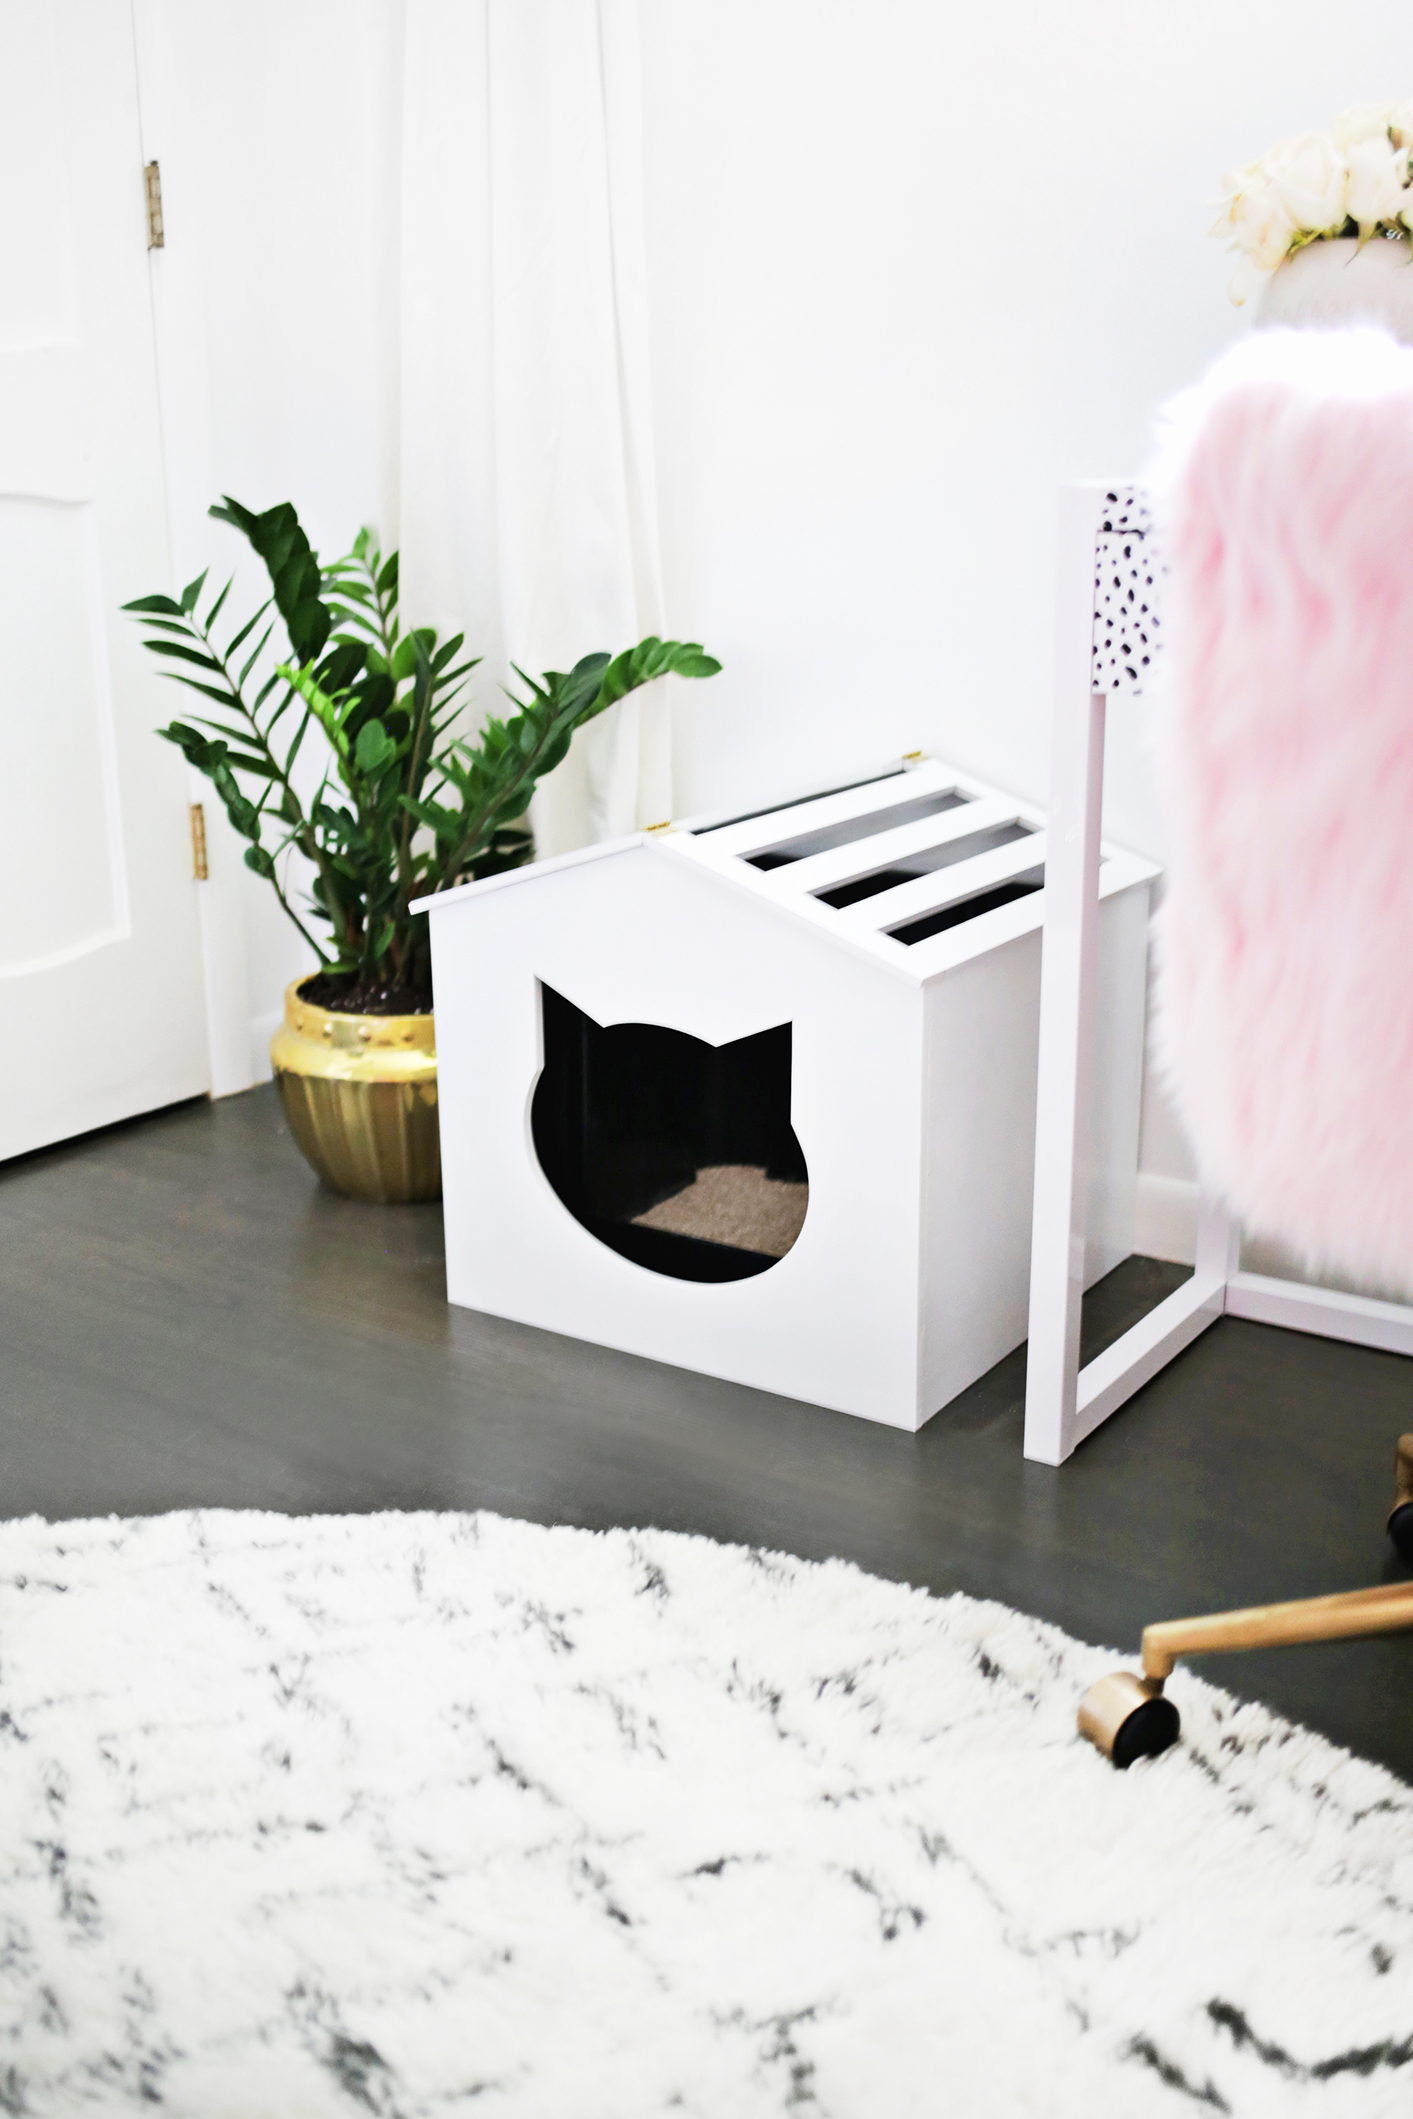 Fun DIY Projects for Furry Friends| Pet Projects, Easy Pet Projects, DIY Pet Projects, Easy DIY Pet Projects, Simple DIY Pet Projects, Pet DIYs, DIY Pet Stuff, Popular Pin #PetProjects #DIYPetProjects #PetDIYs #DIYCrafts